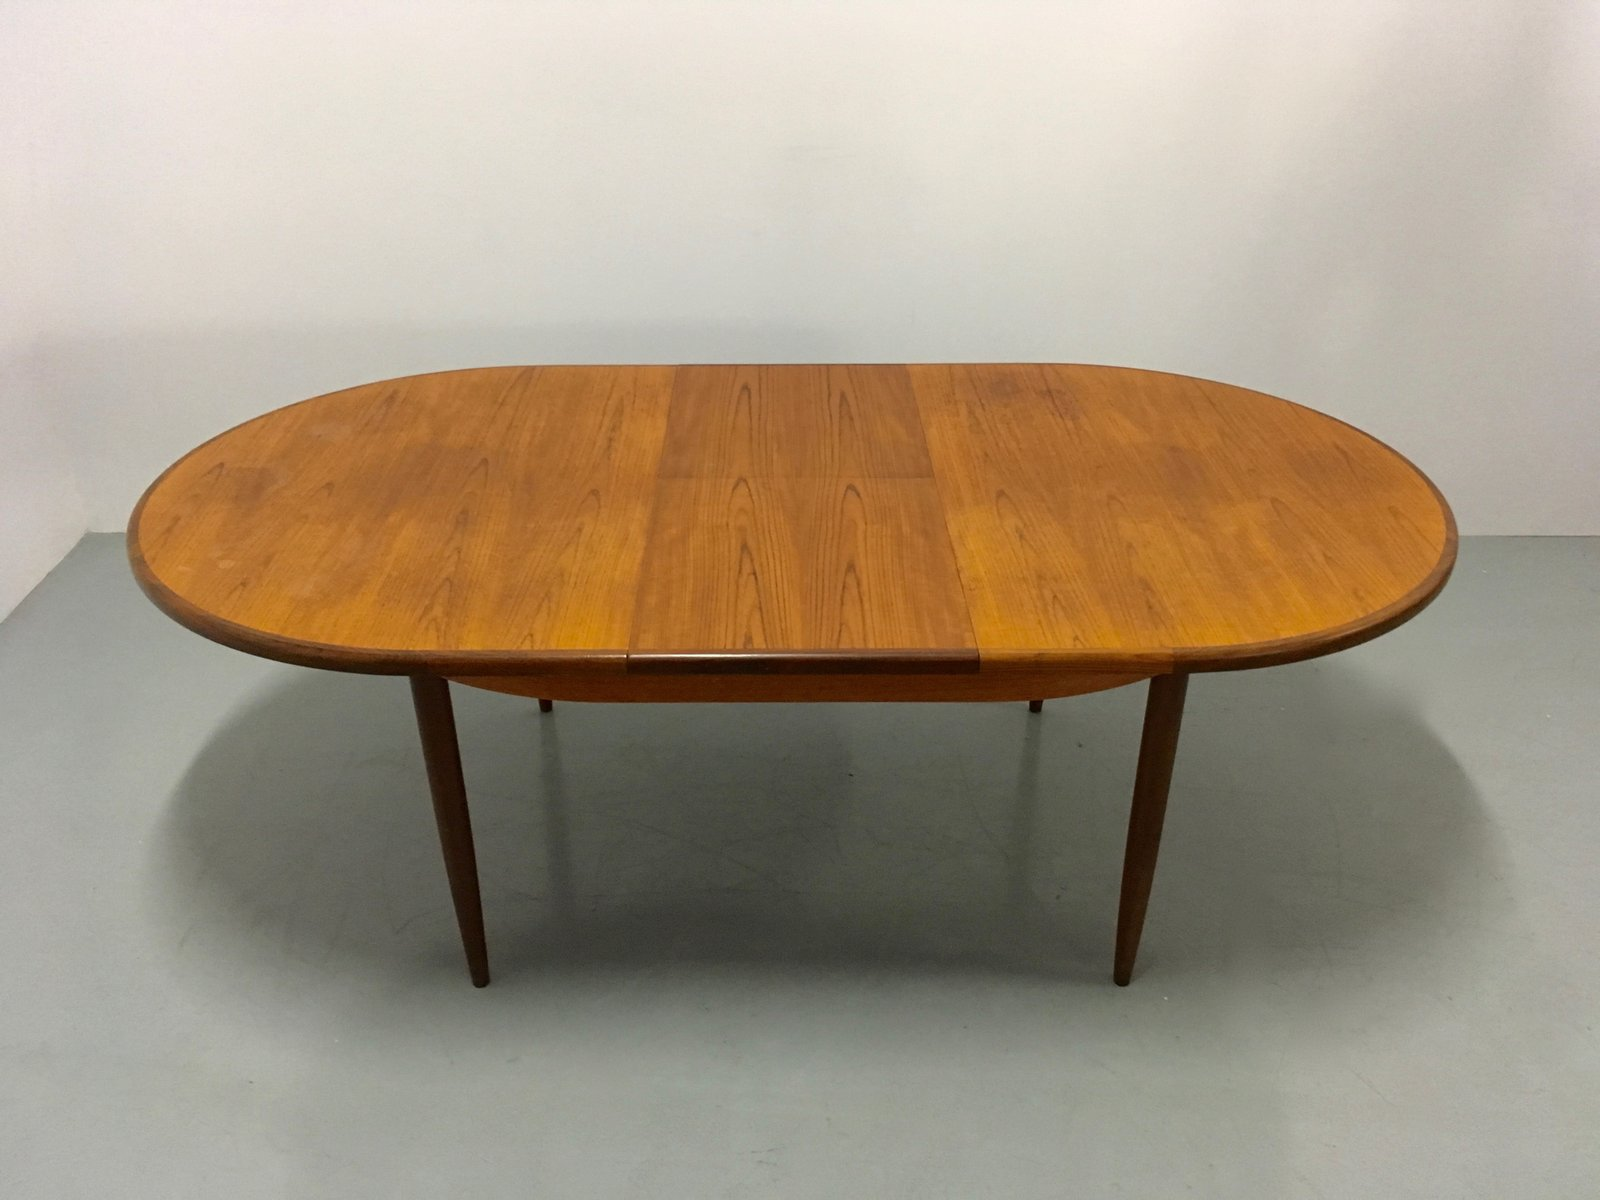 Vintage Extendable Teak Dining Table form G Plan 1960s  : vintage extendable teak dining table form g plan 1960s 11 from www.pamono.co.uk size 1600 x 1200 jpeg 88kB